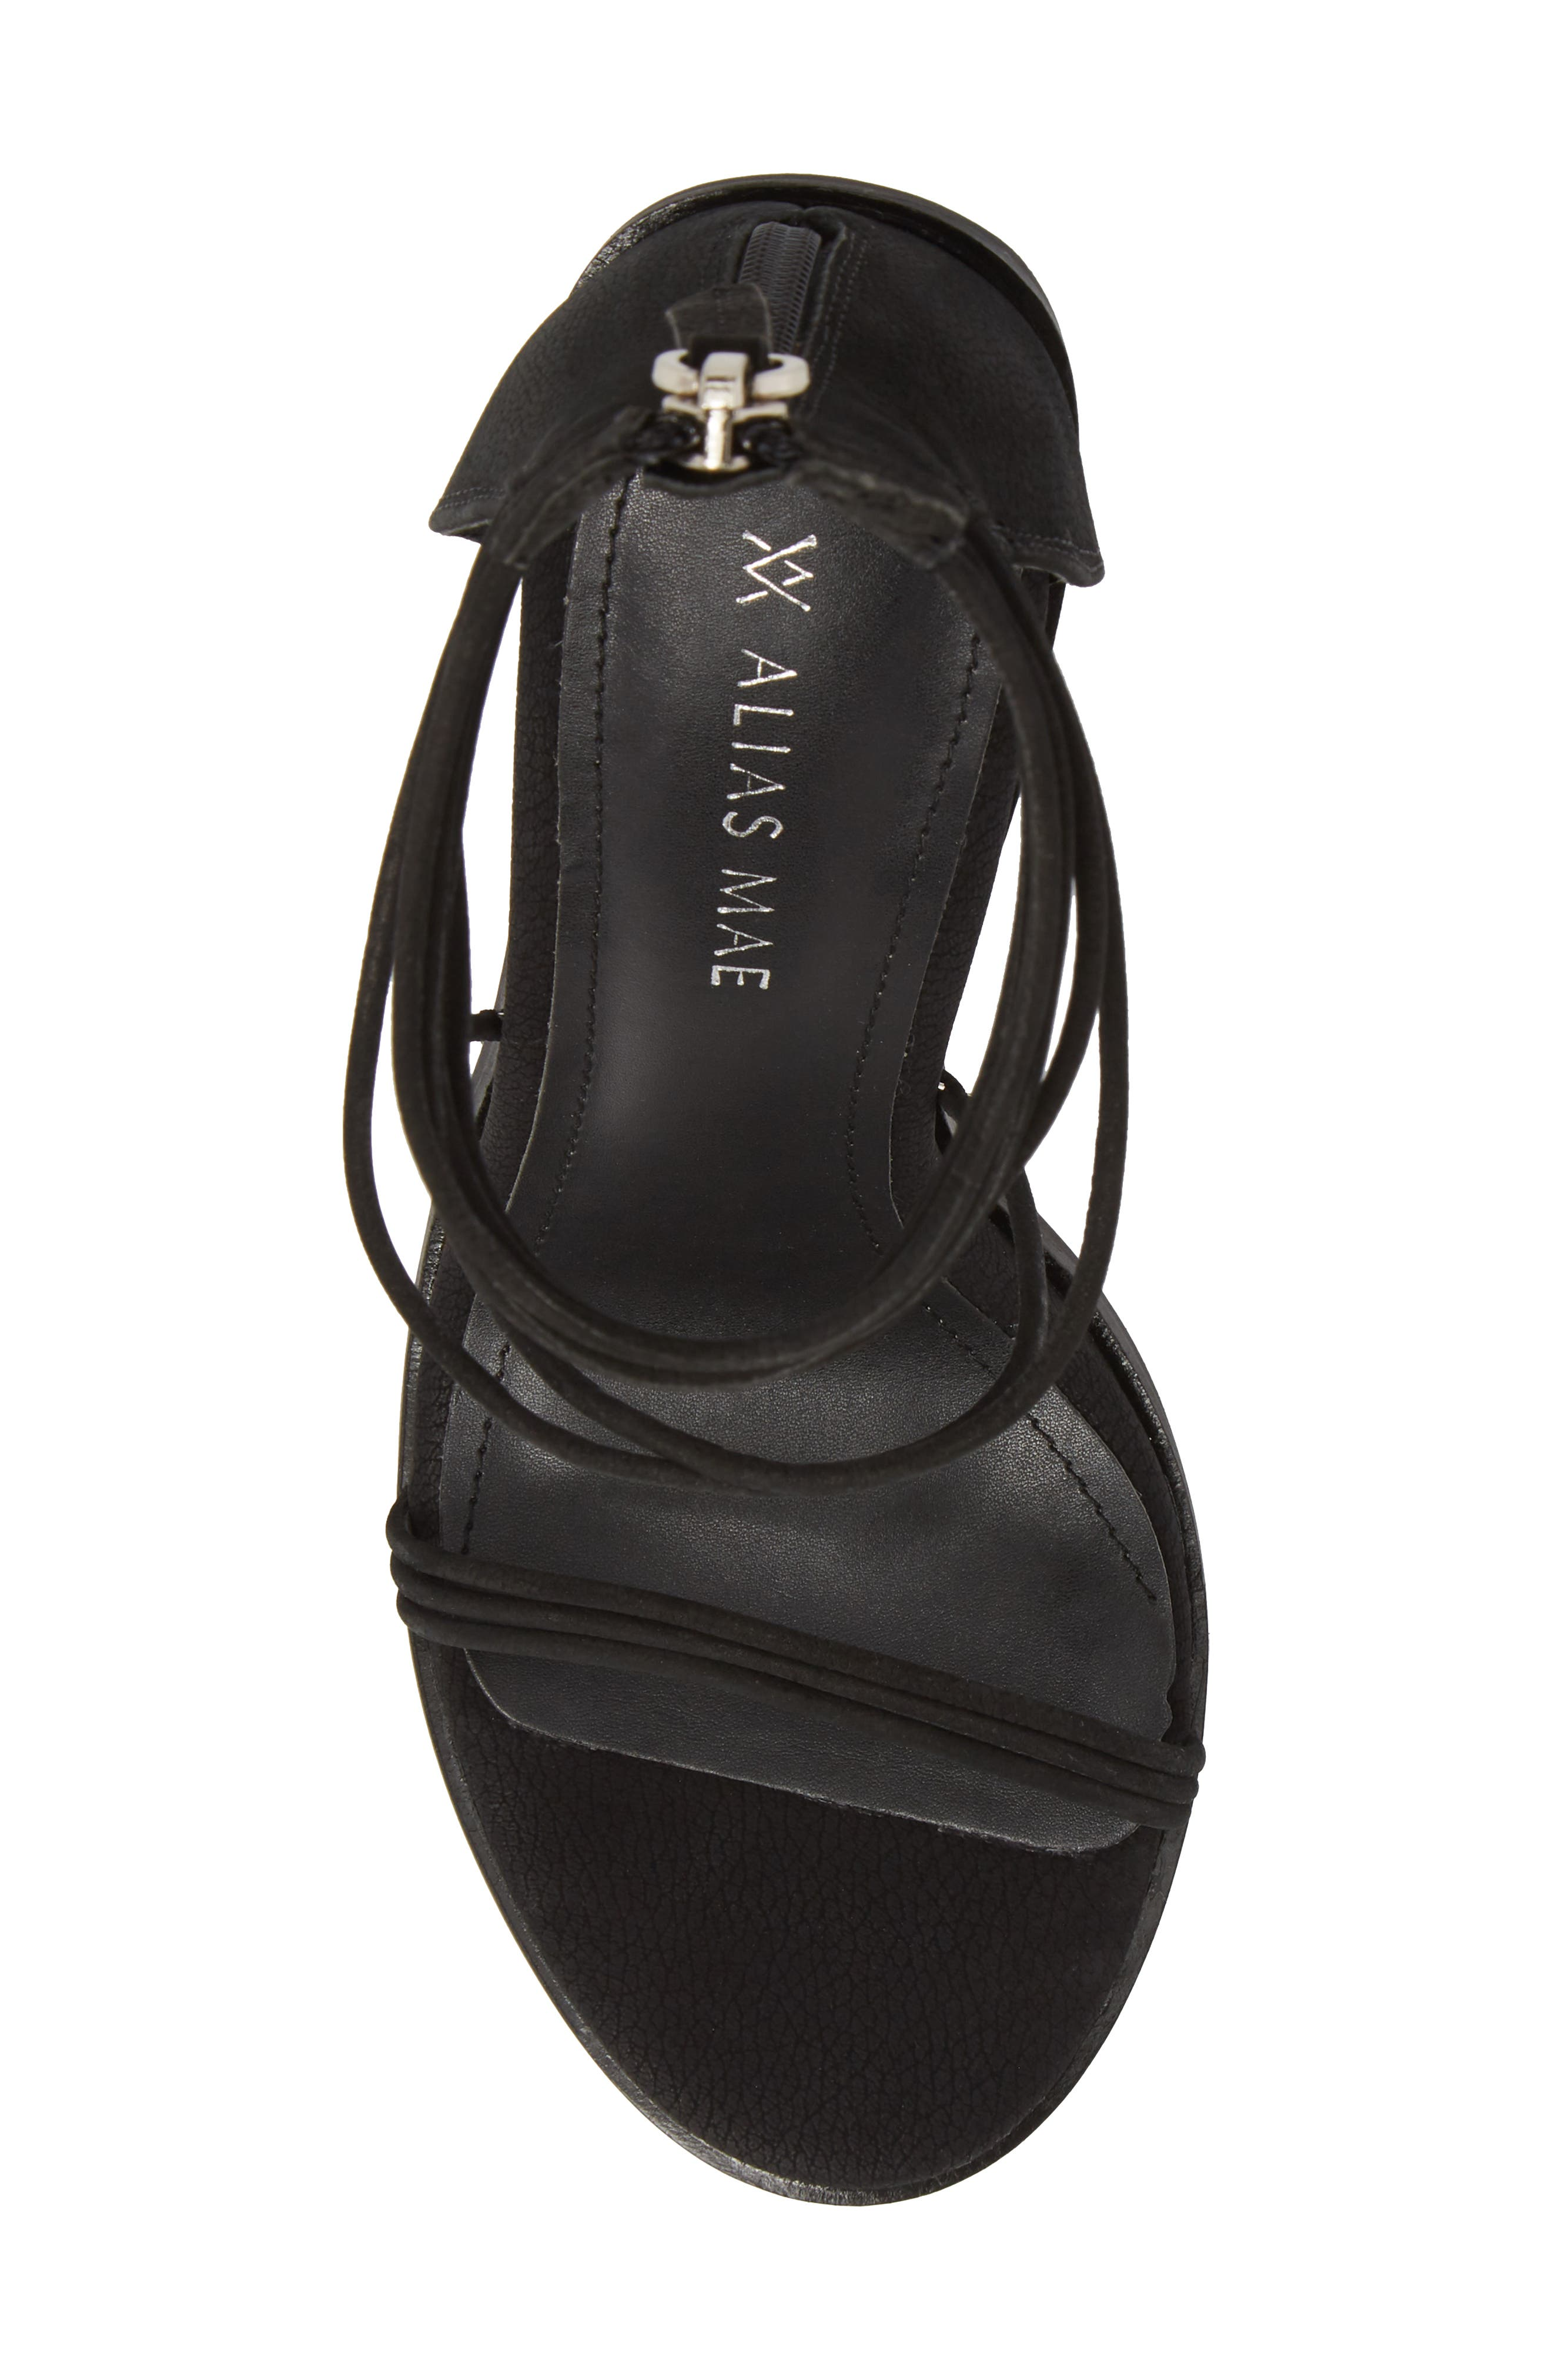 Aflux Tall Strappy Sandal,                             Alternate thumbnail 4, color,                             Black Nubuck Leather